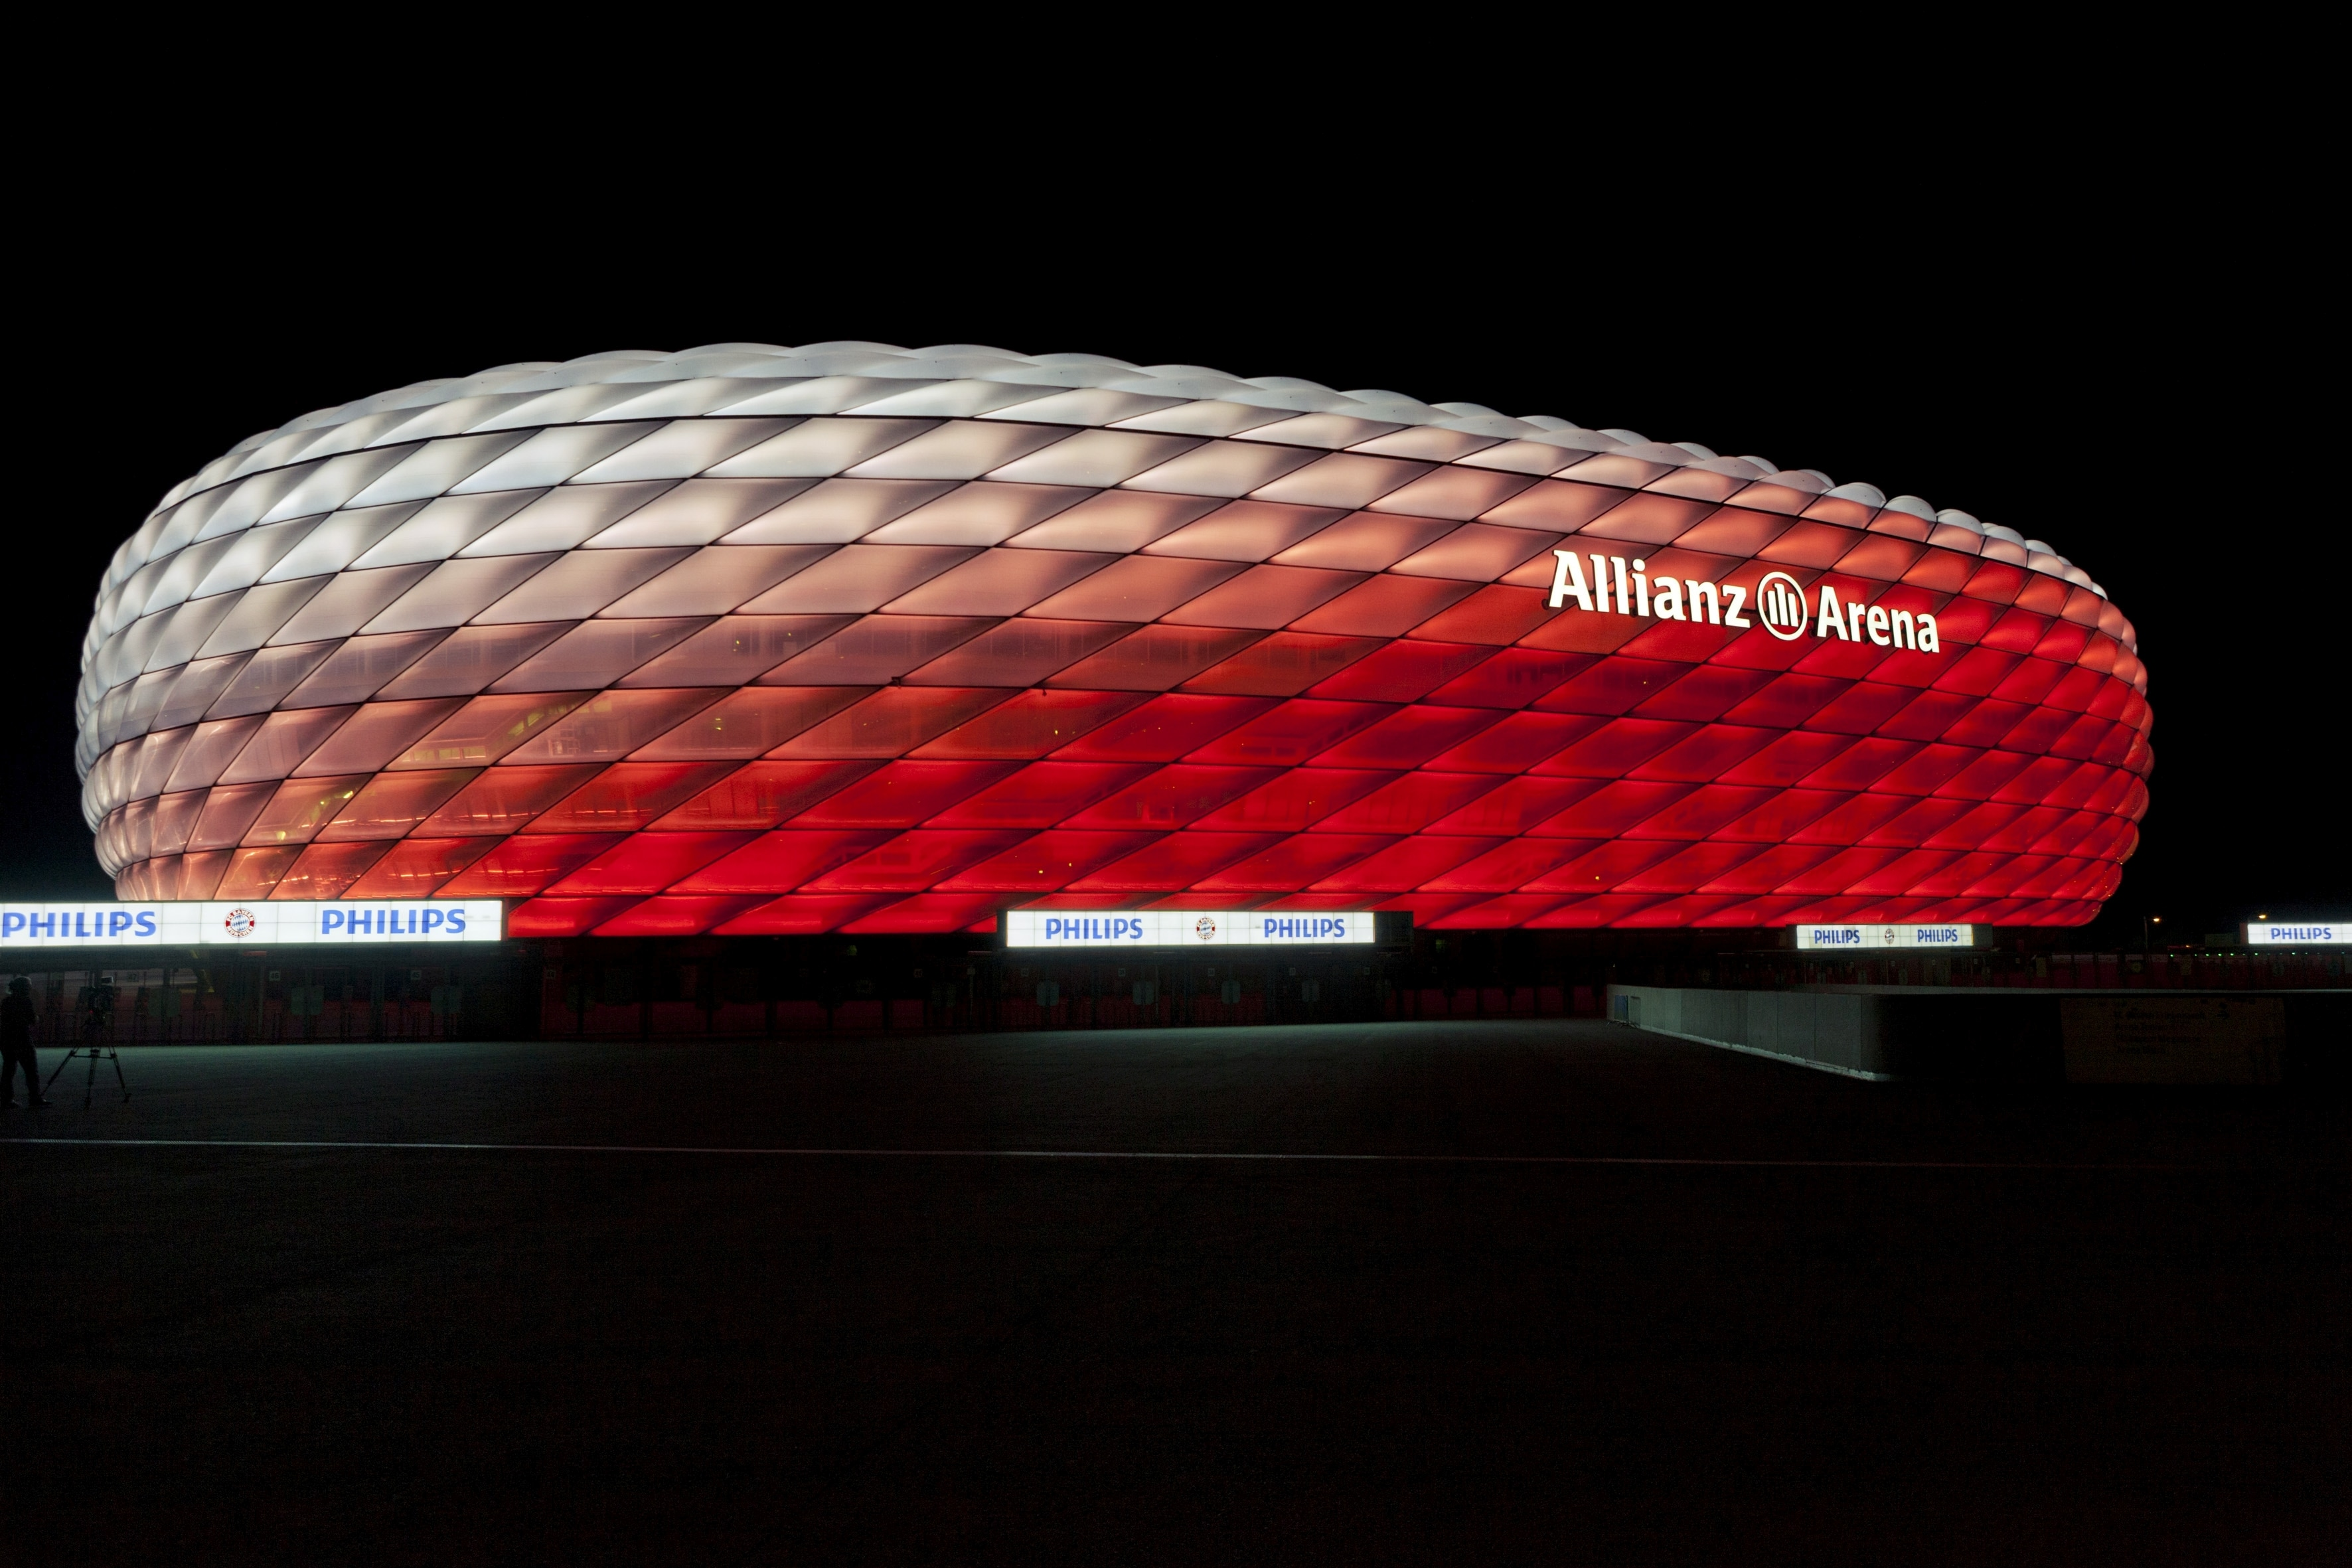 3d Designs Wallpaper Hd Connected Philips Led Lighting For The Allianz Arena Fc